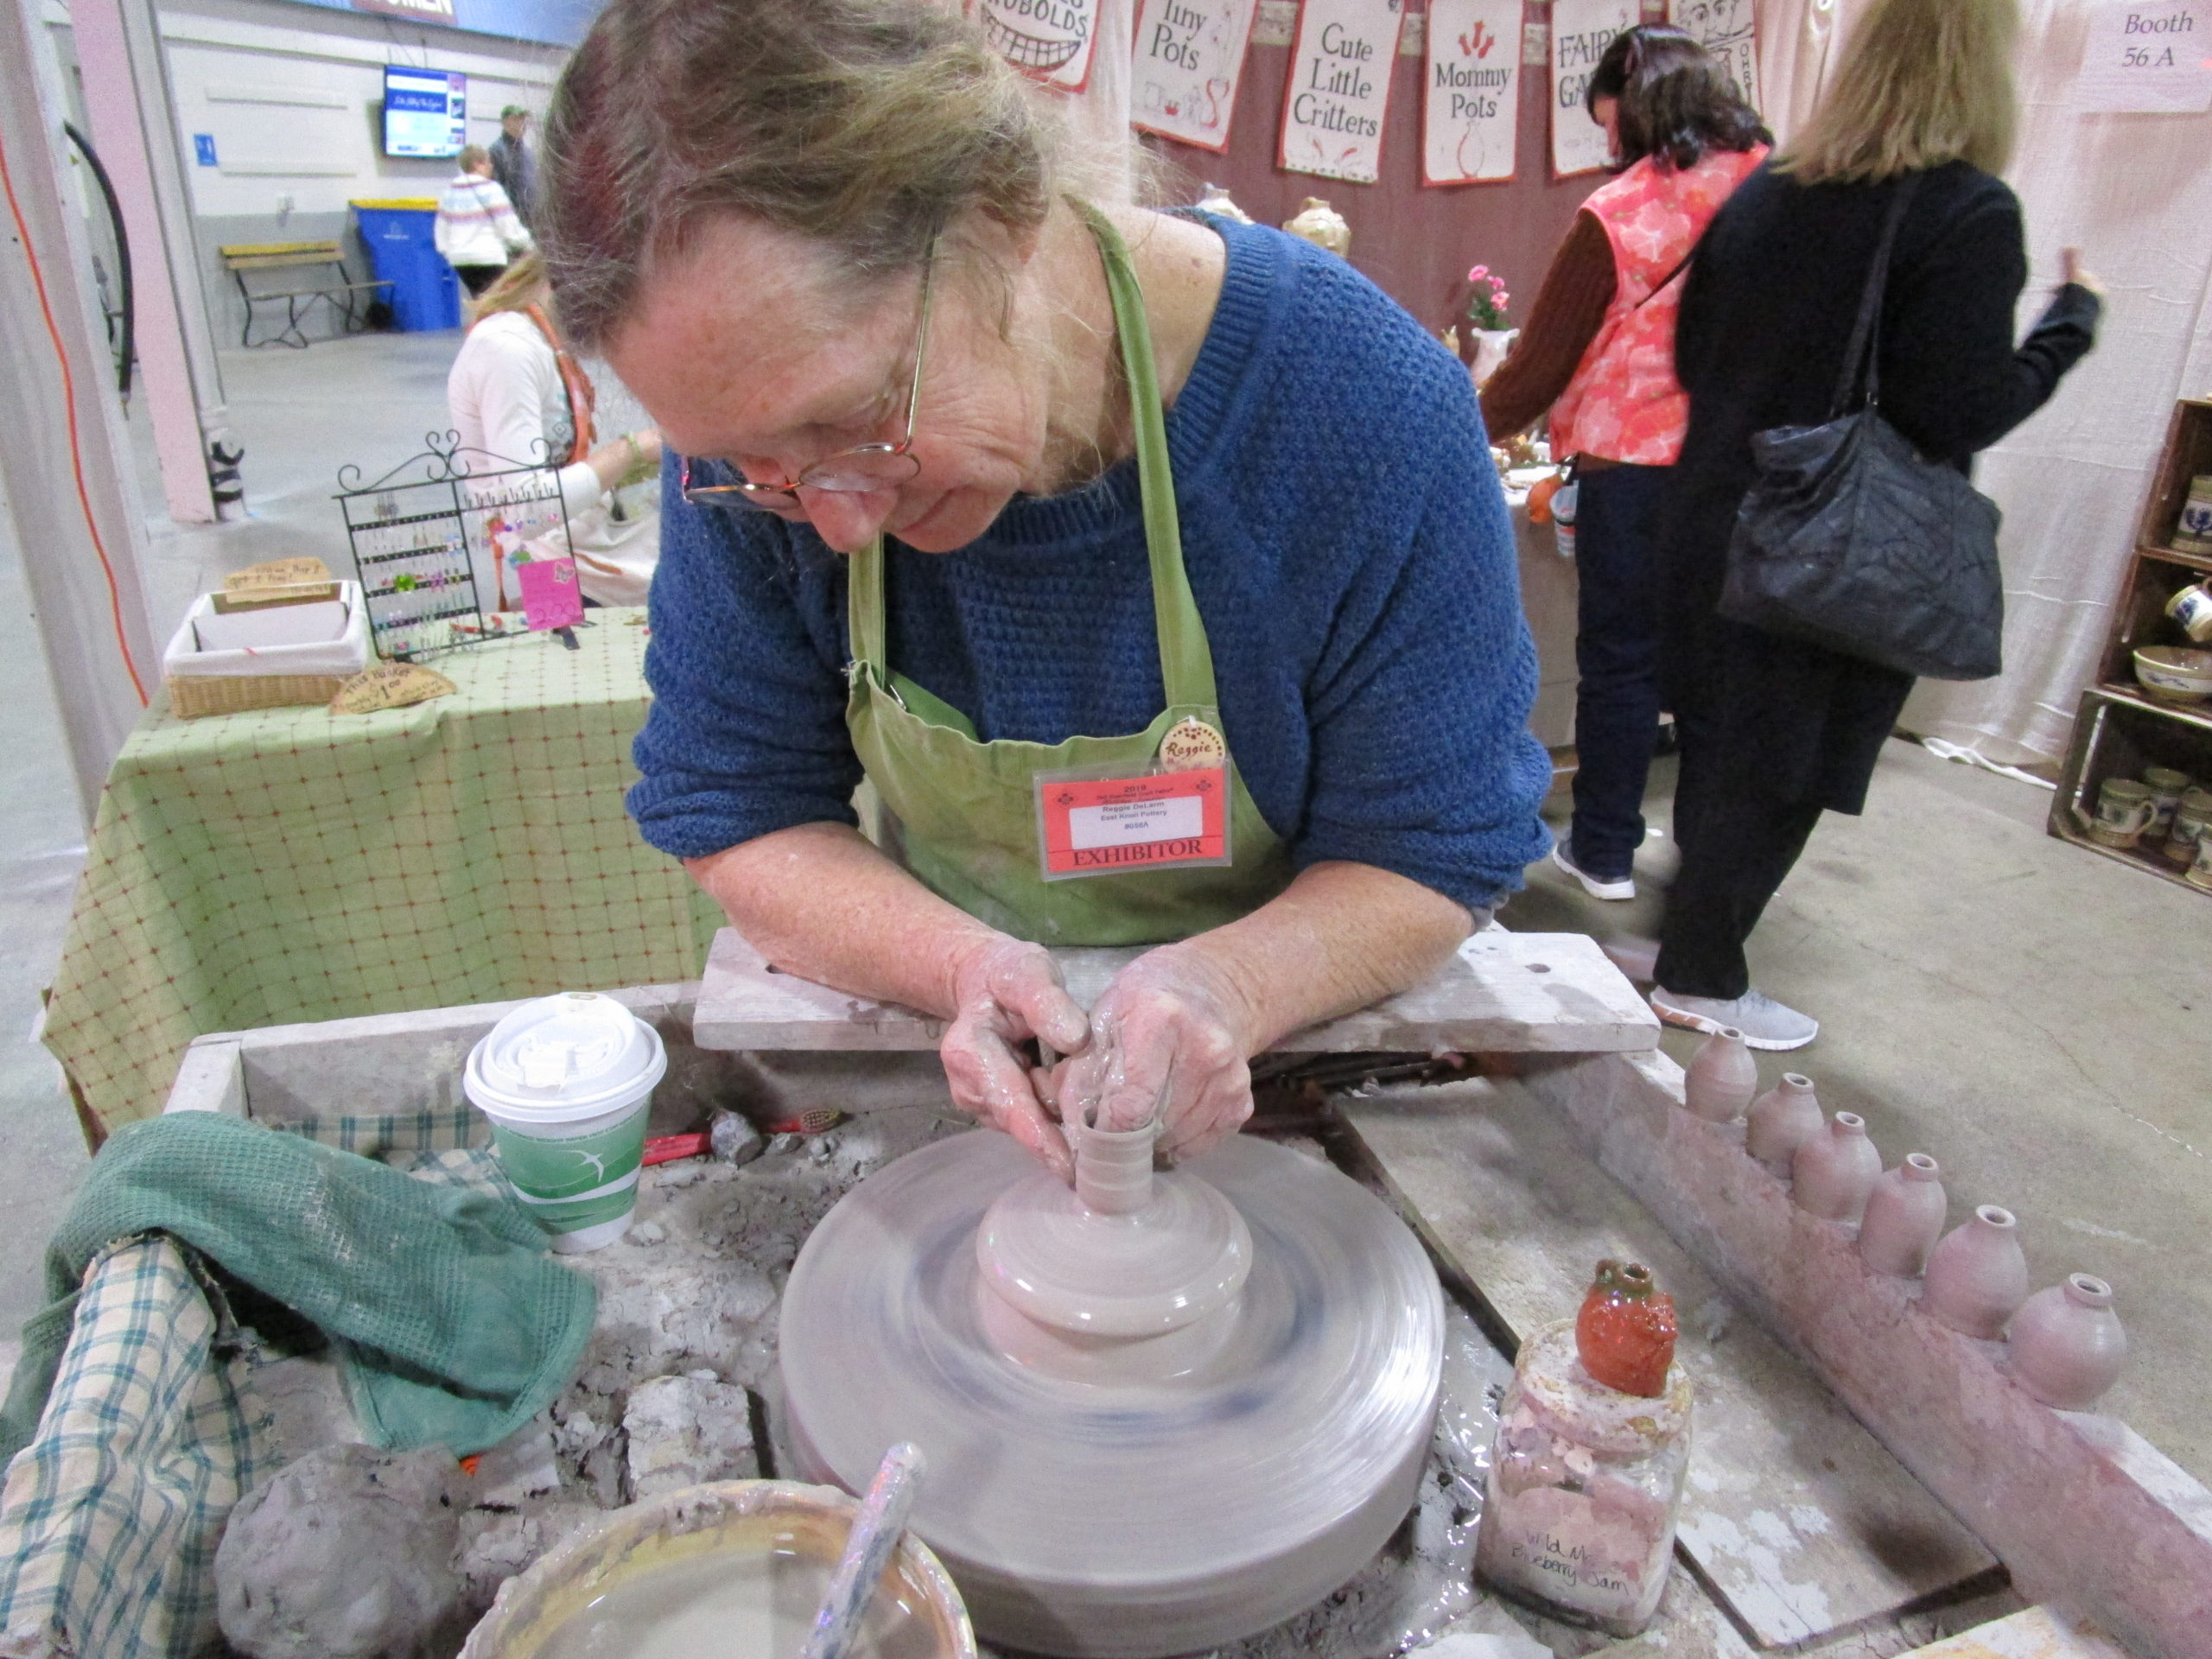 A potter works at one of the Old Deerfield Craft Fairs.